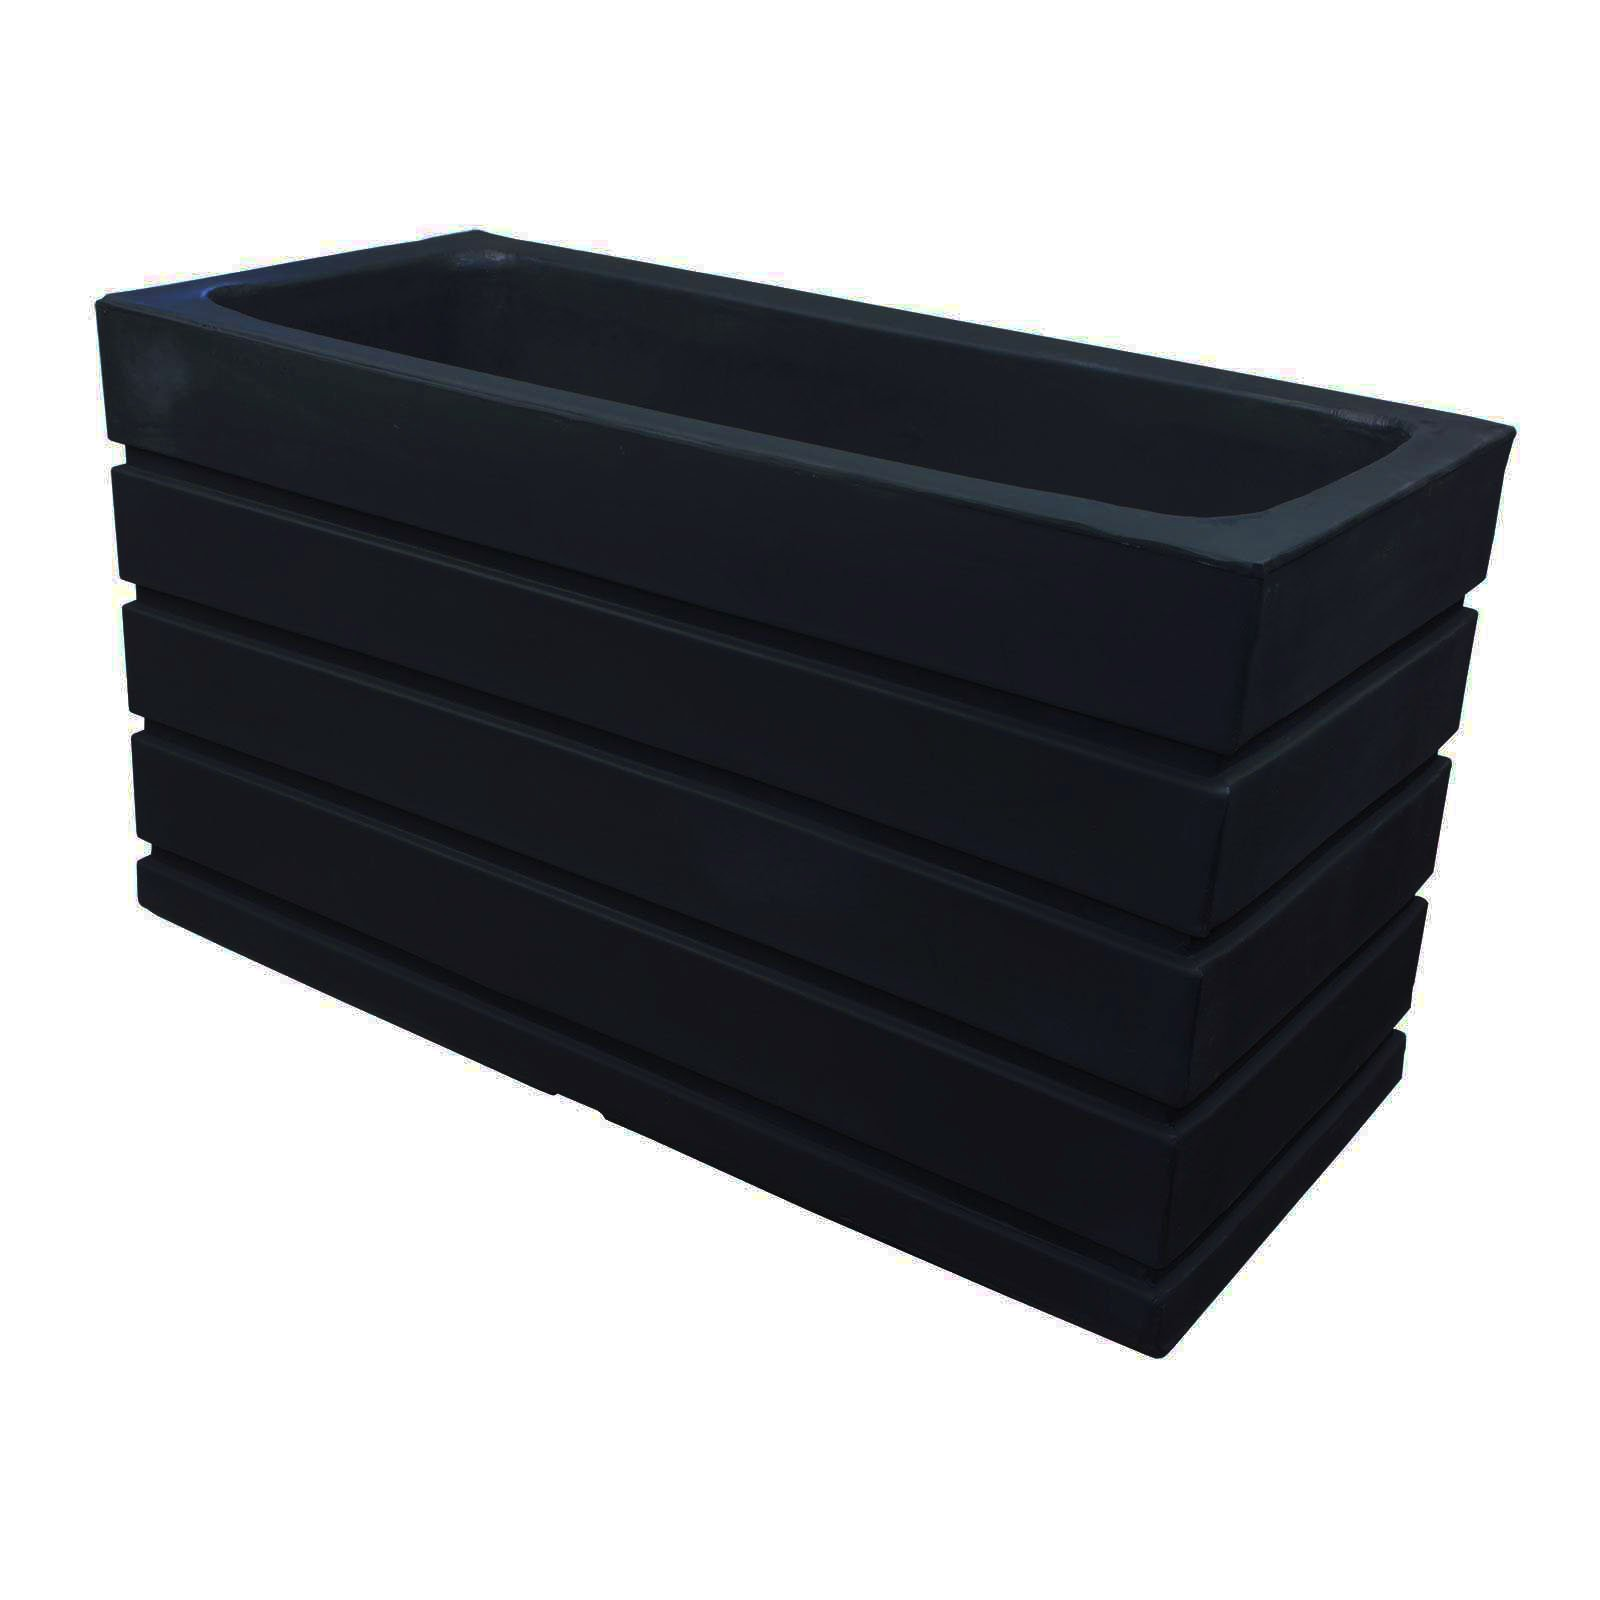 Large Plastic Planter Boxes